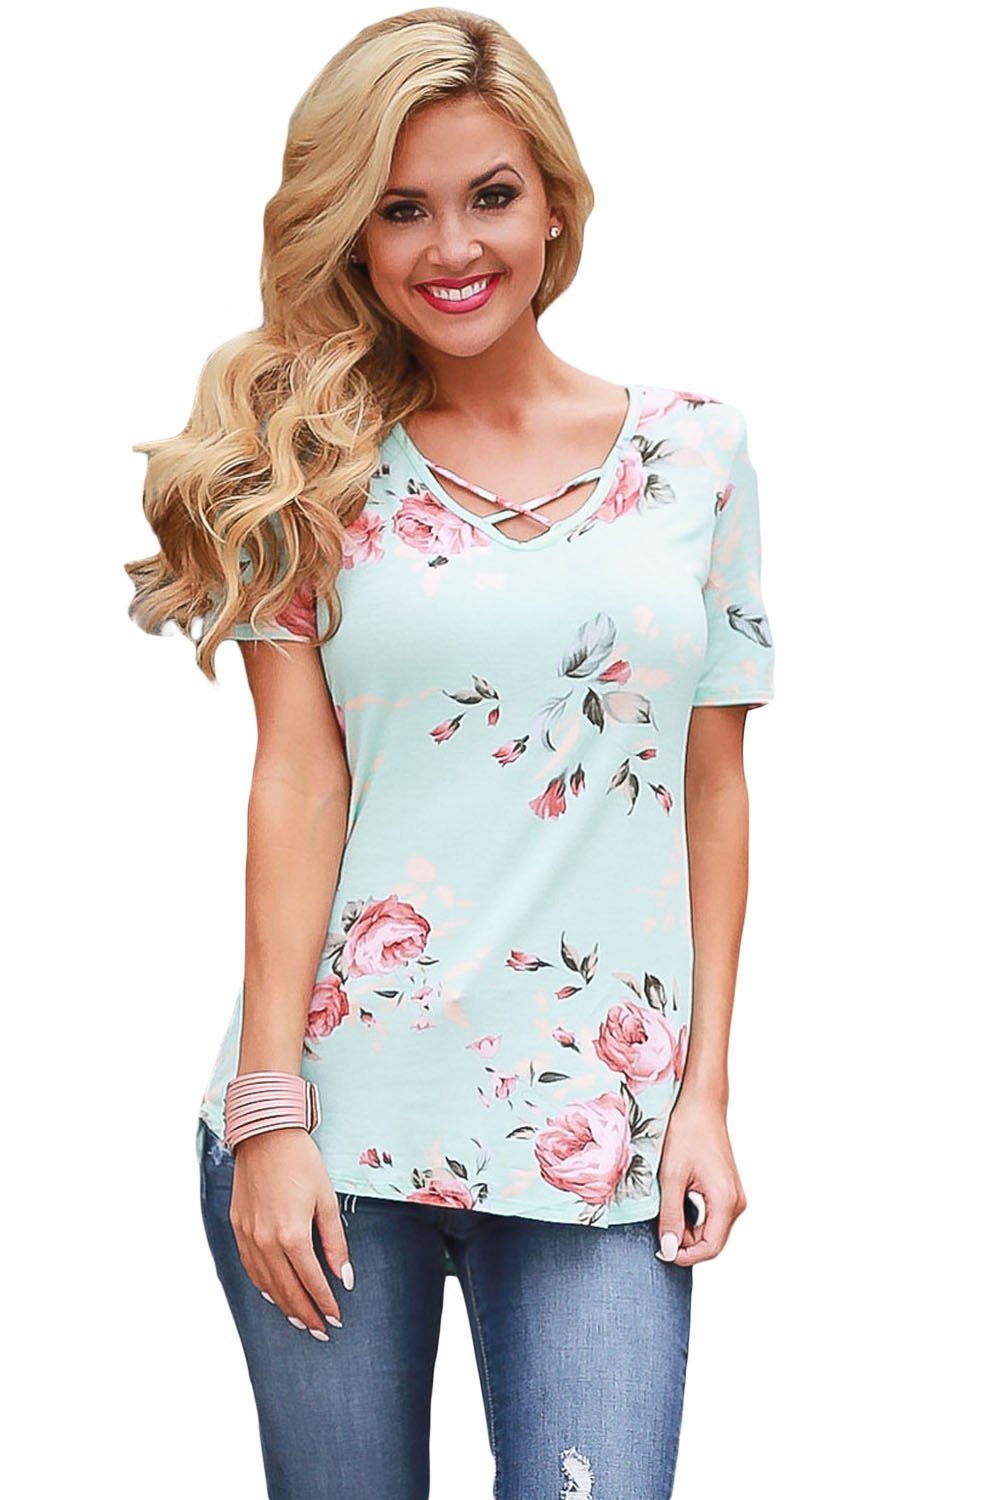 Baby Blue Super Soft Floral Tee Shirt with Crisscross Neck